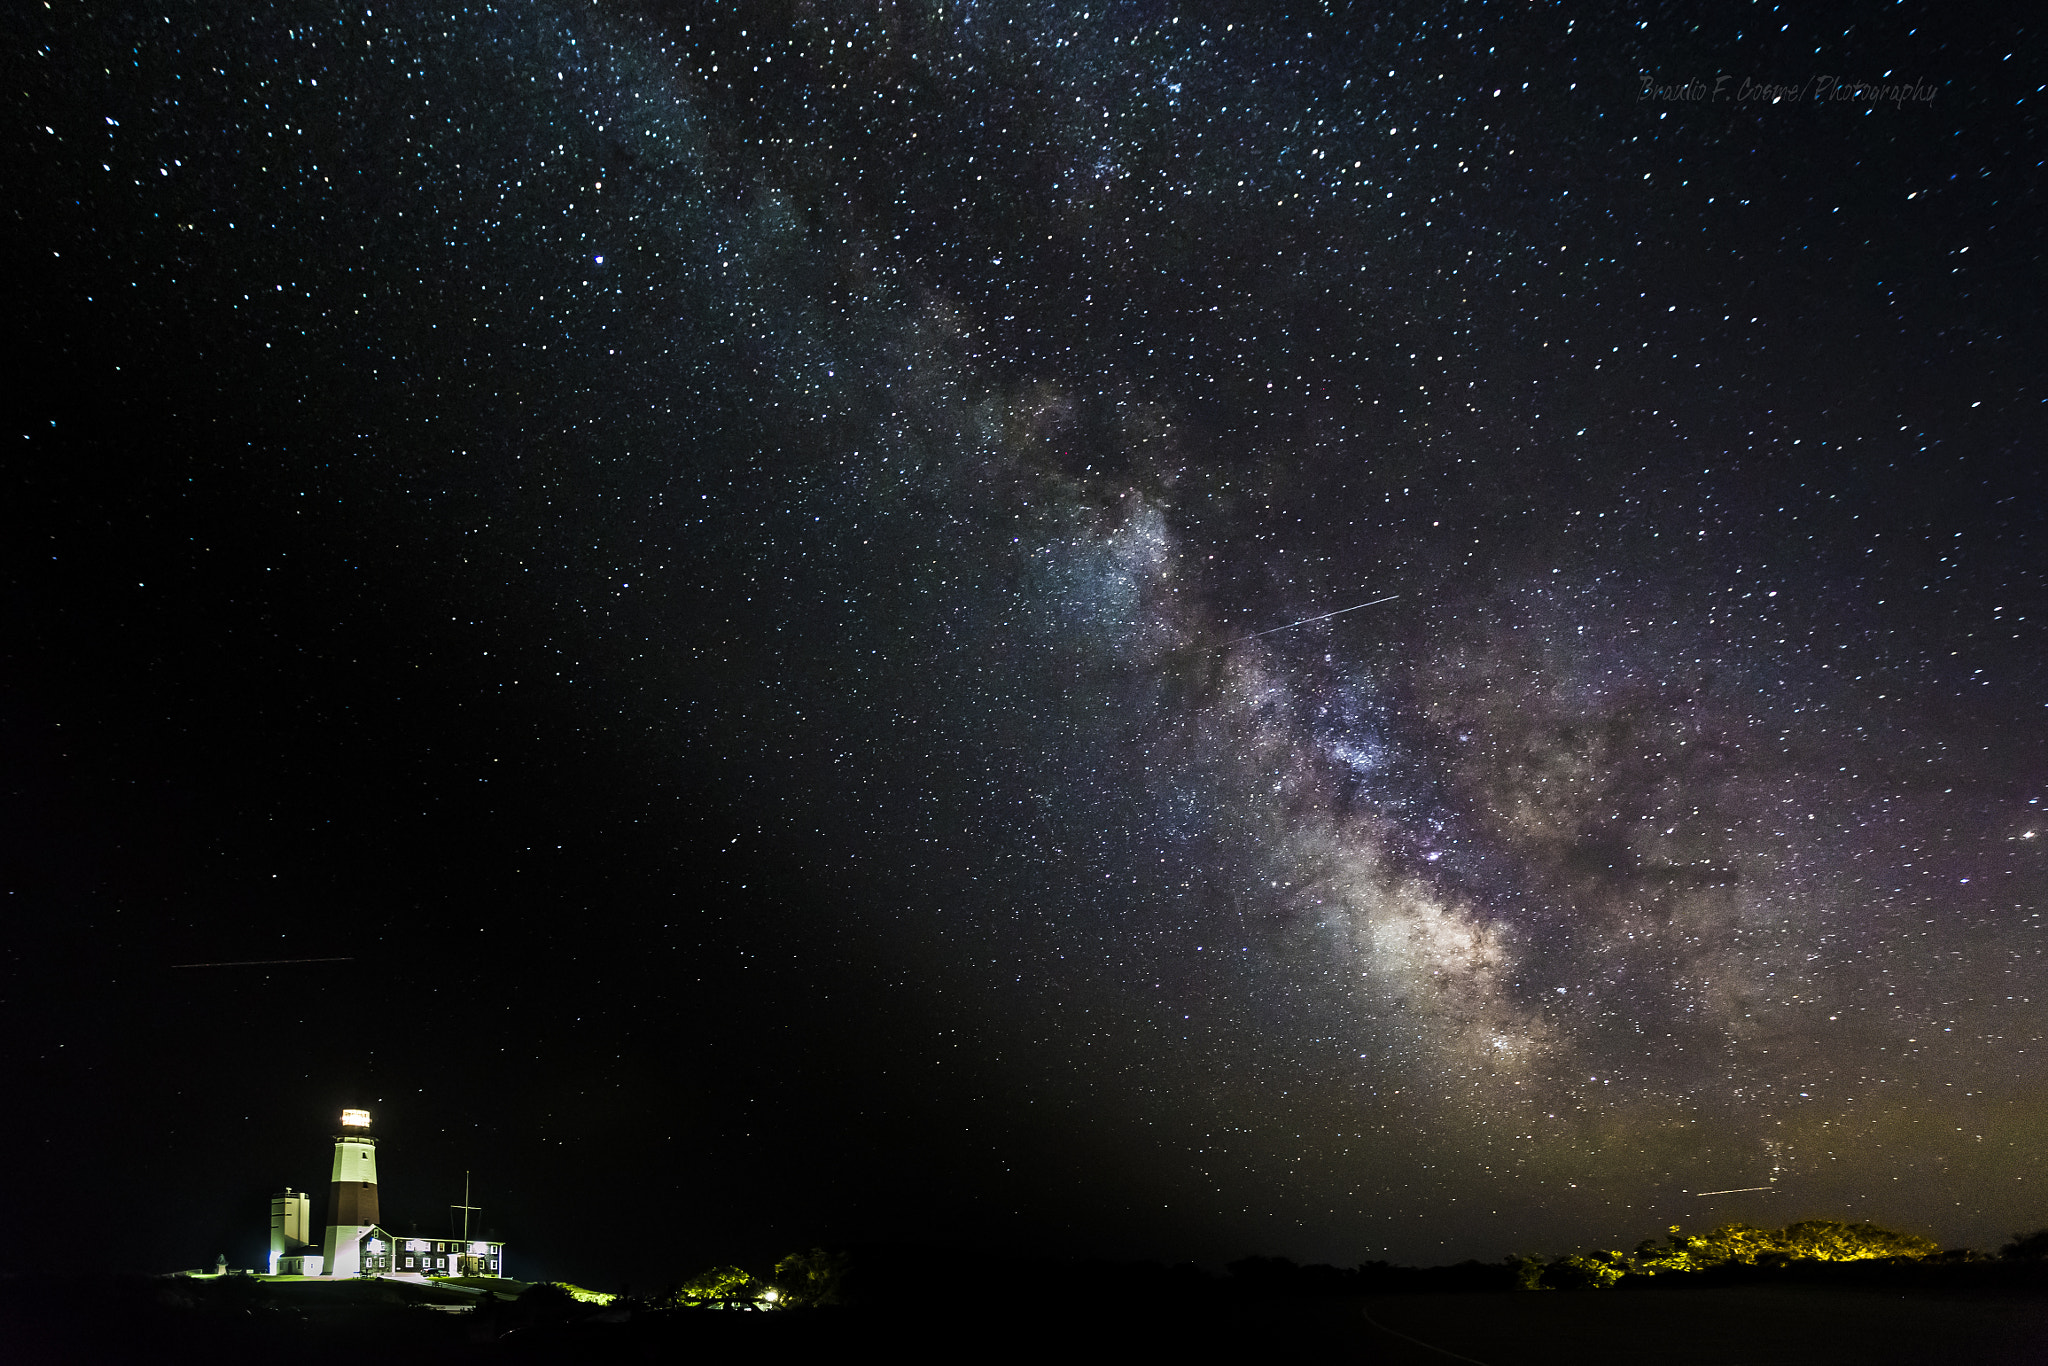 Photograph The Lighthouse and the Milky Way... by Braulio Cosme on 500px